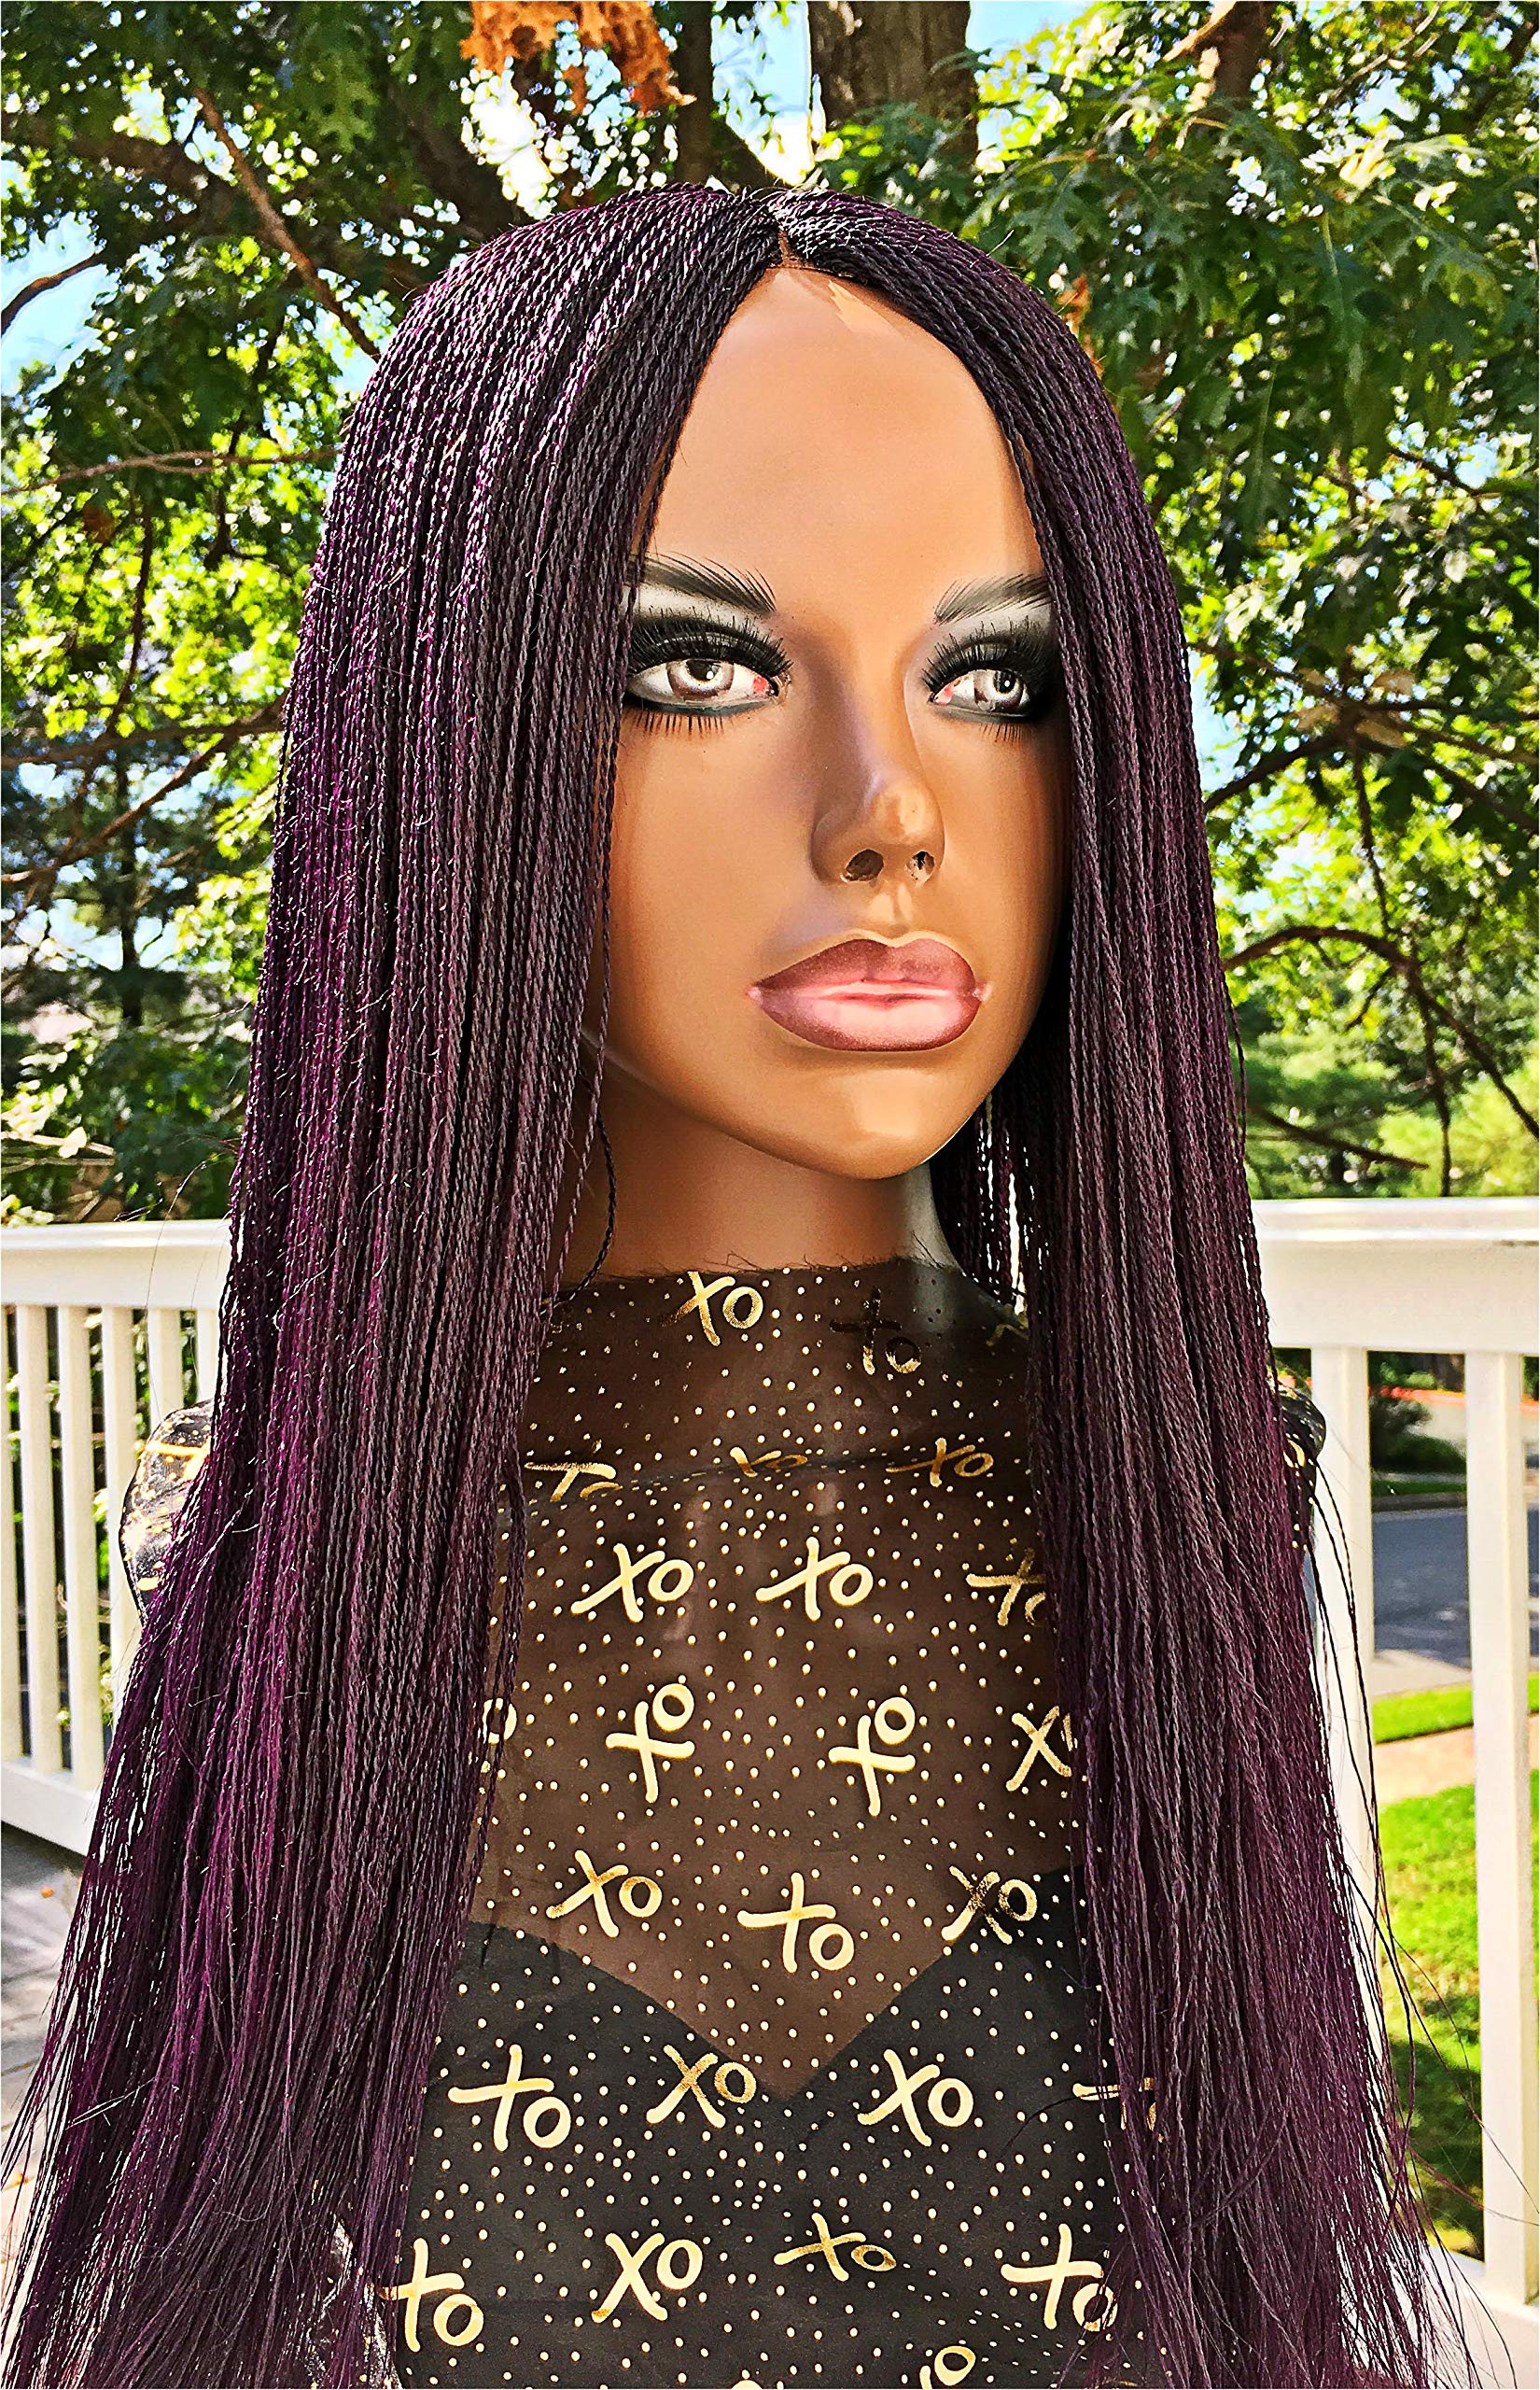 2Chique Boutique Women's Handmade Micro Twist Braided Wig Color Purple, 26 Inches